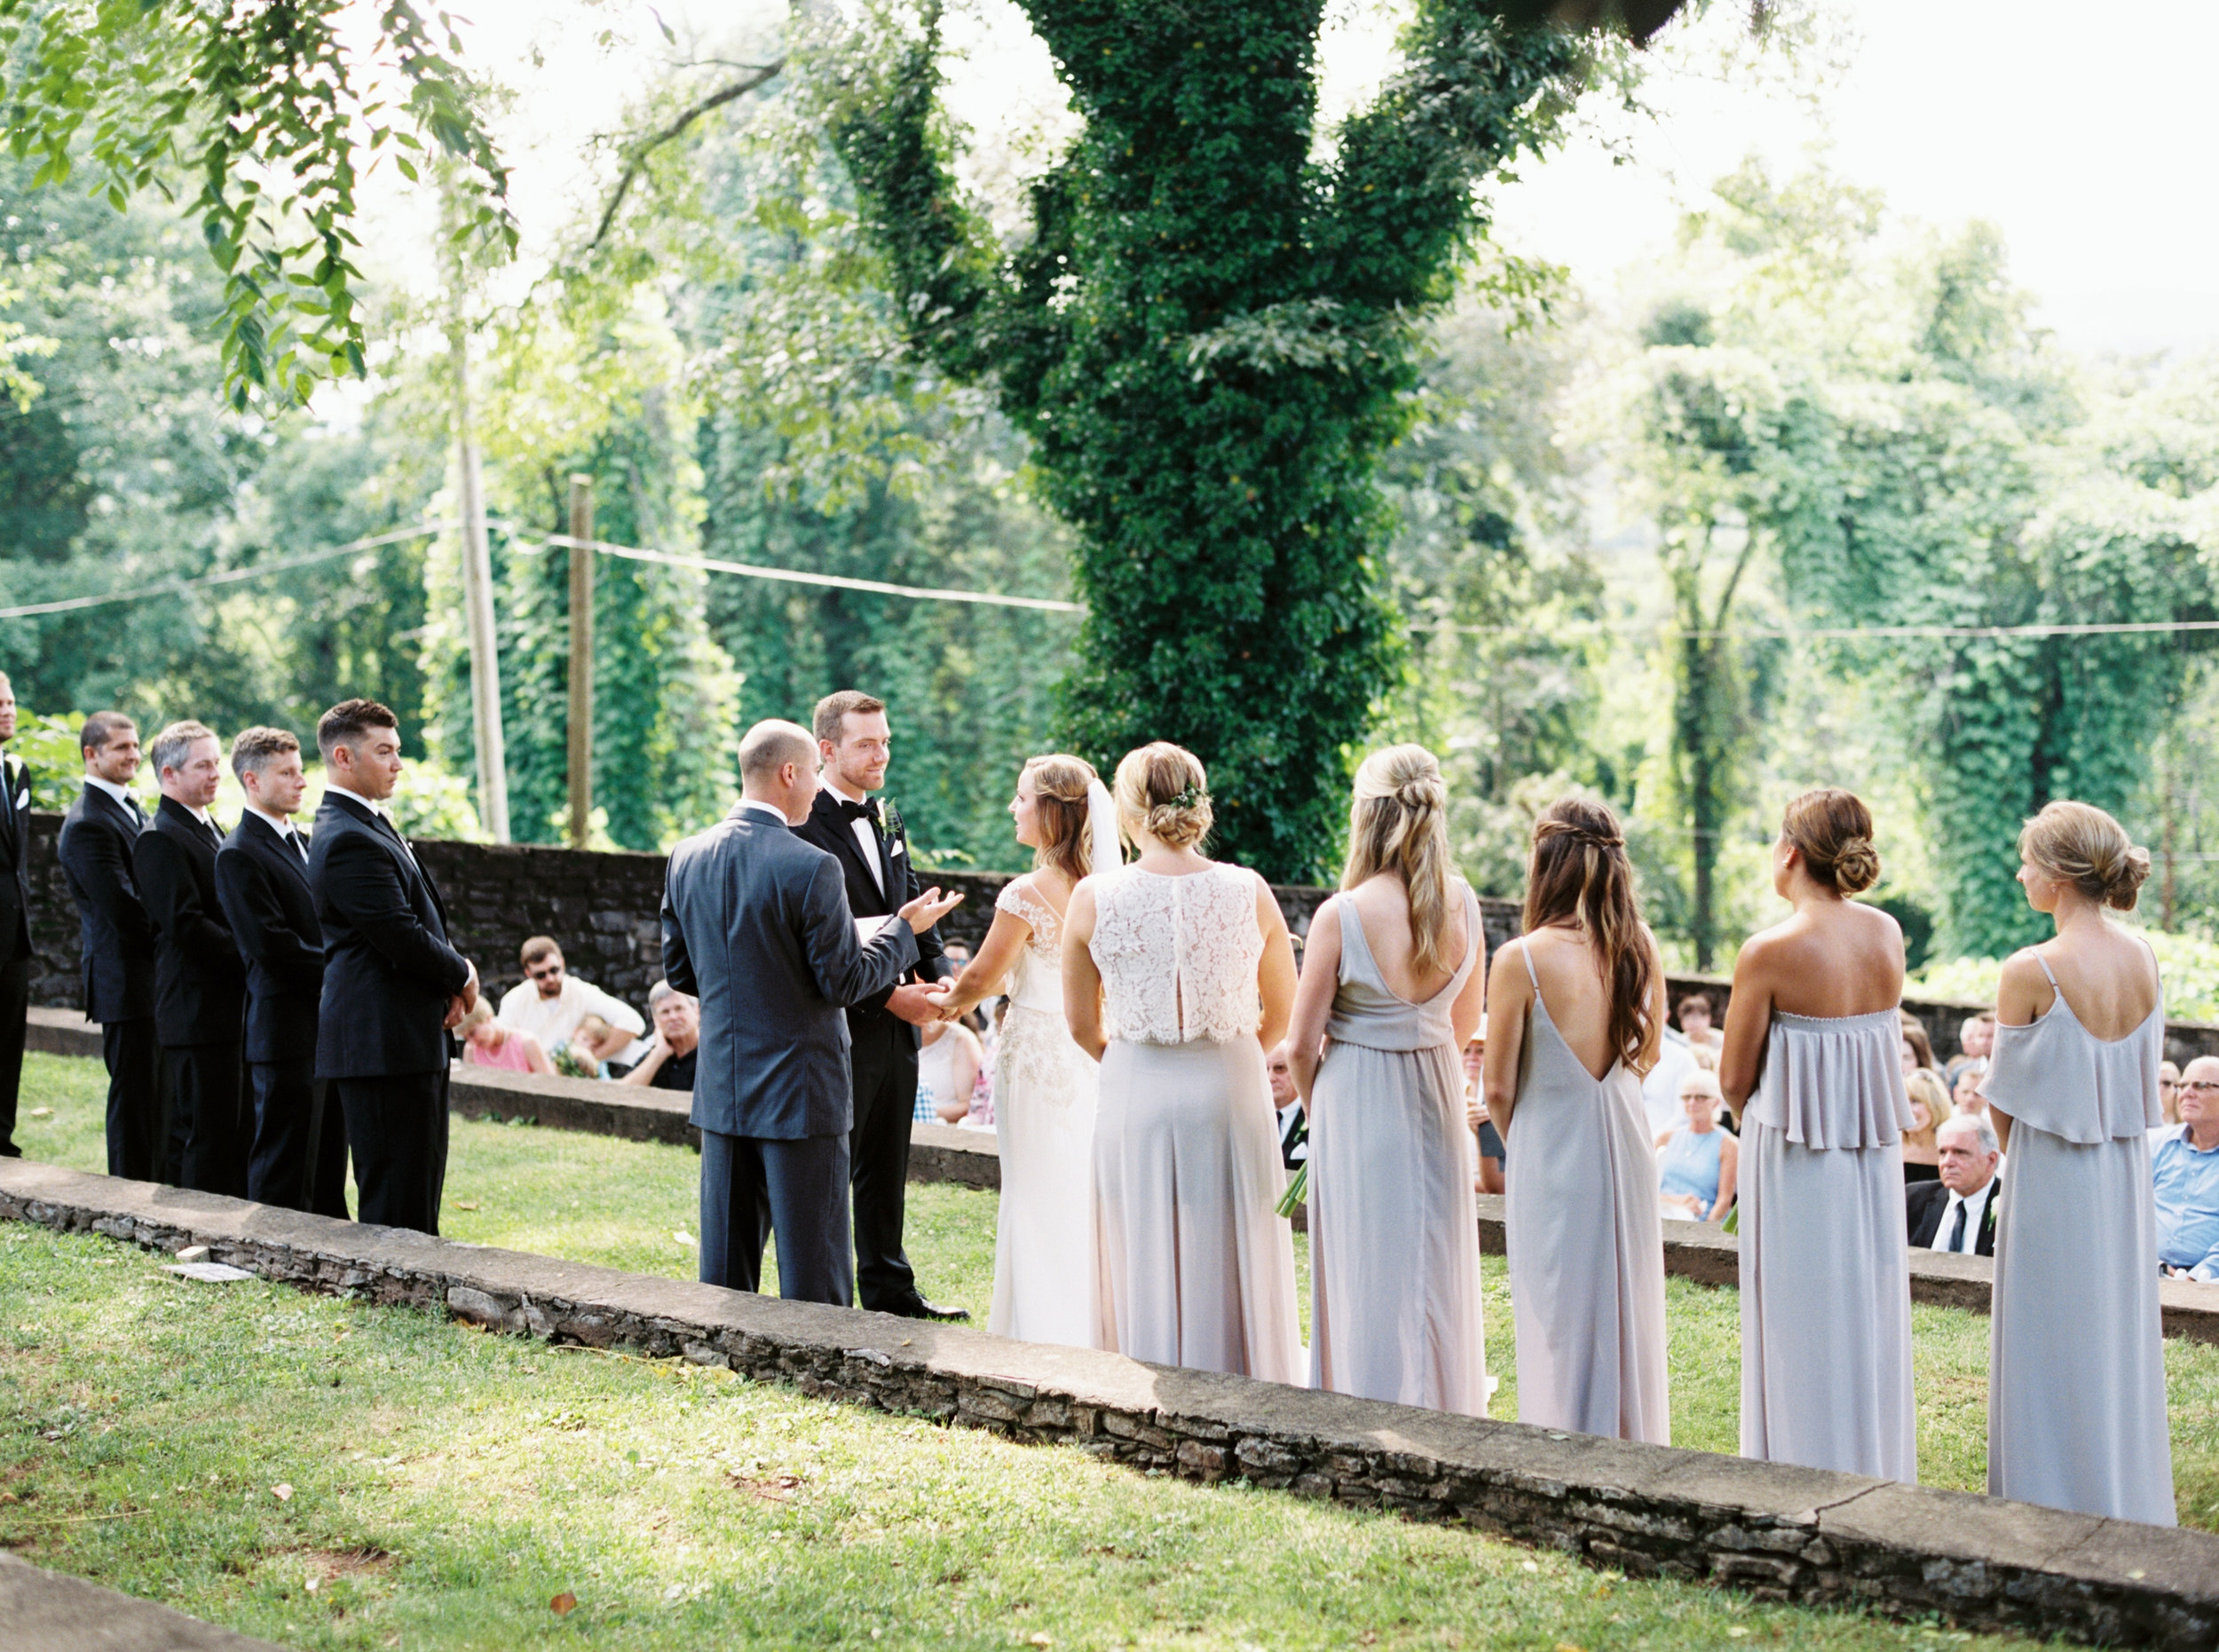 Katie_Matt_Wedding_Knoxville_Botanical_Garden_Abigail_Malone_photography-254.jpg